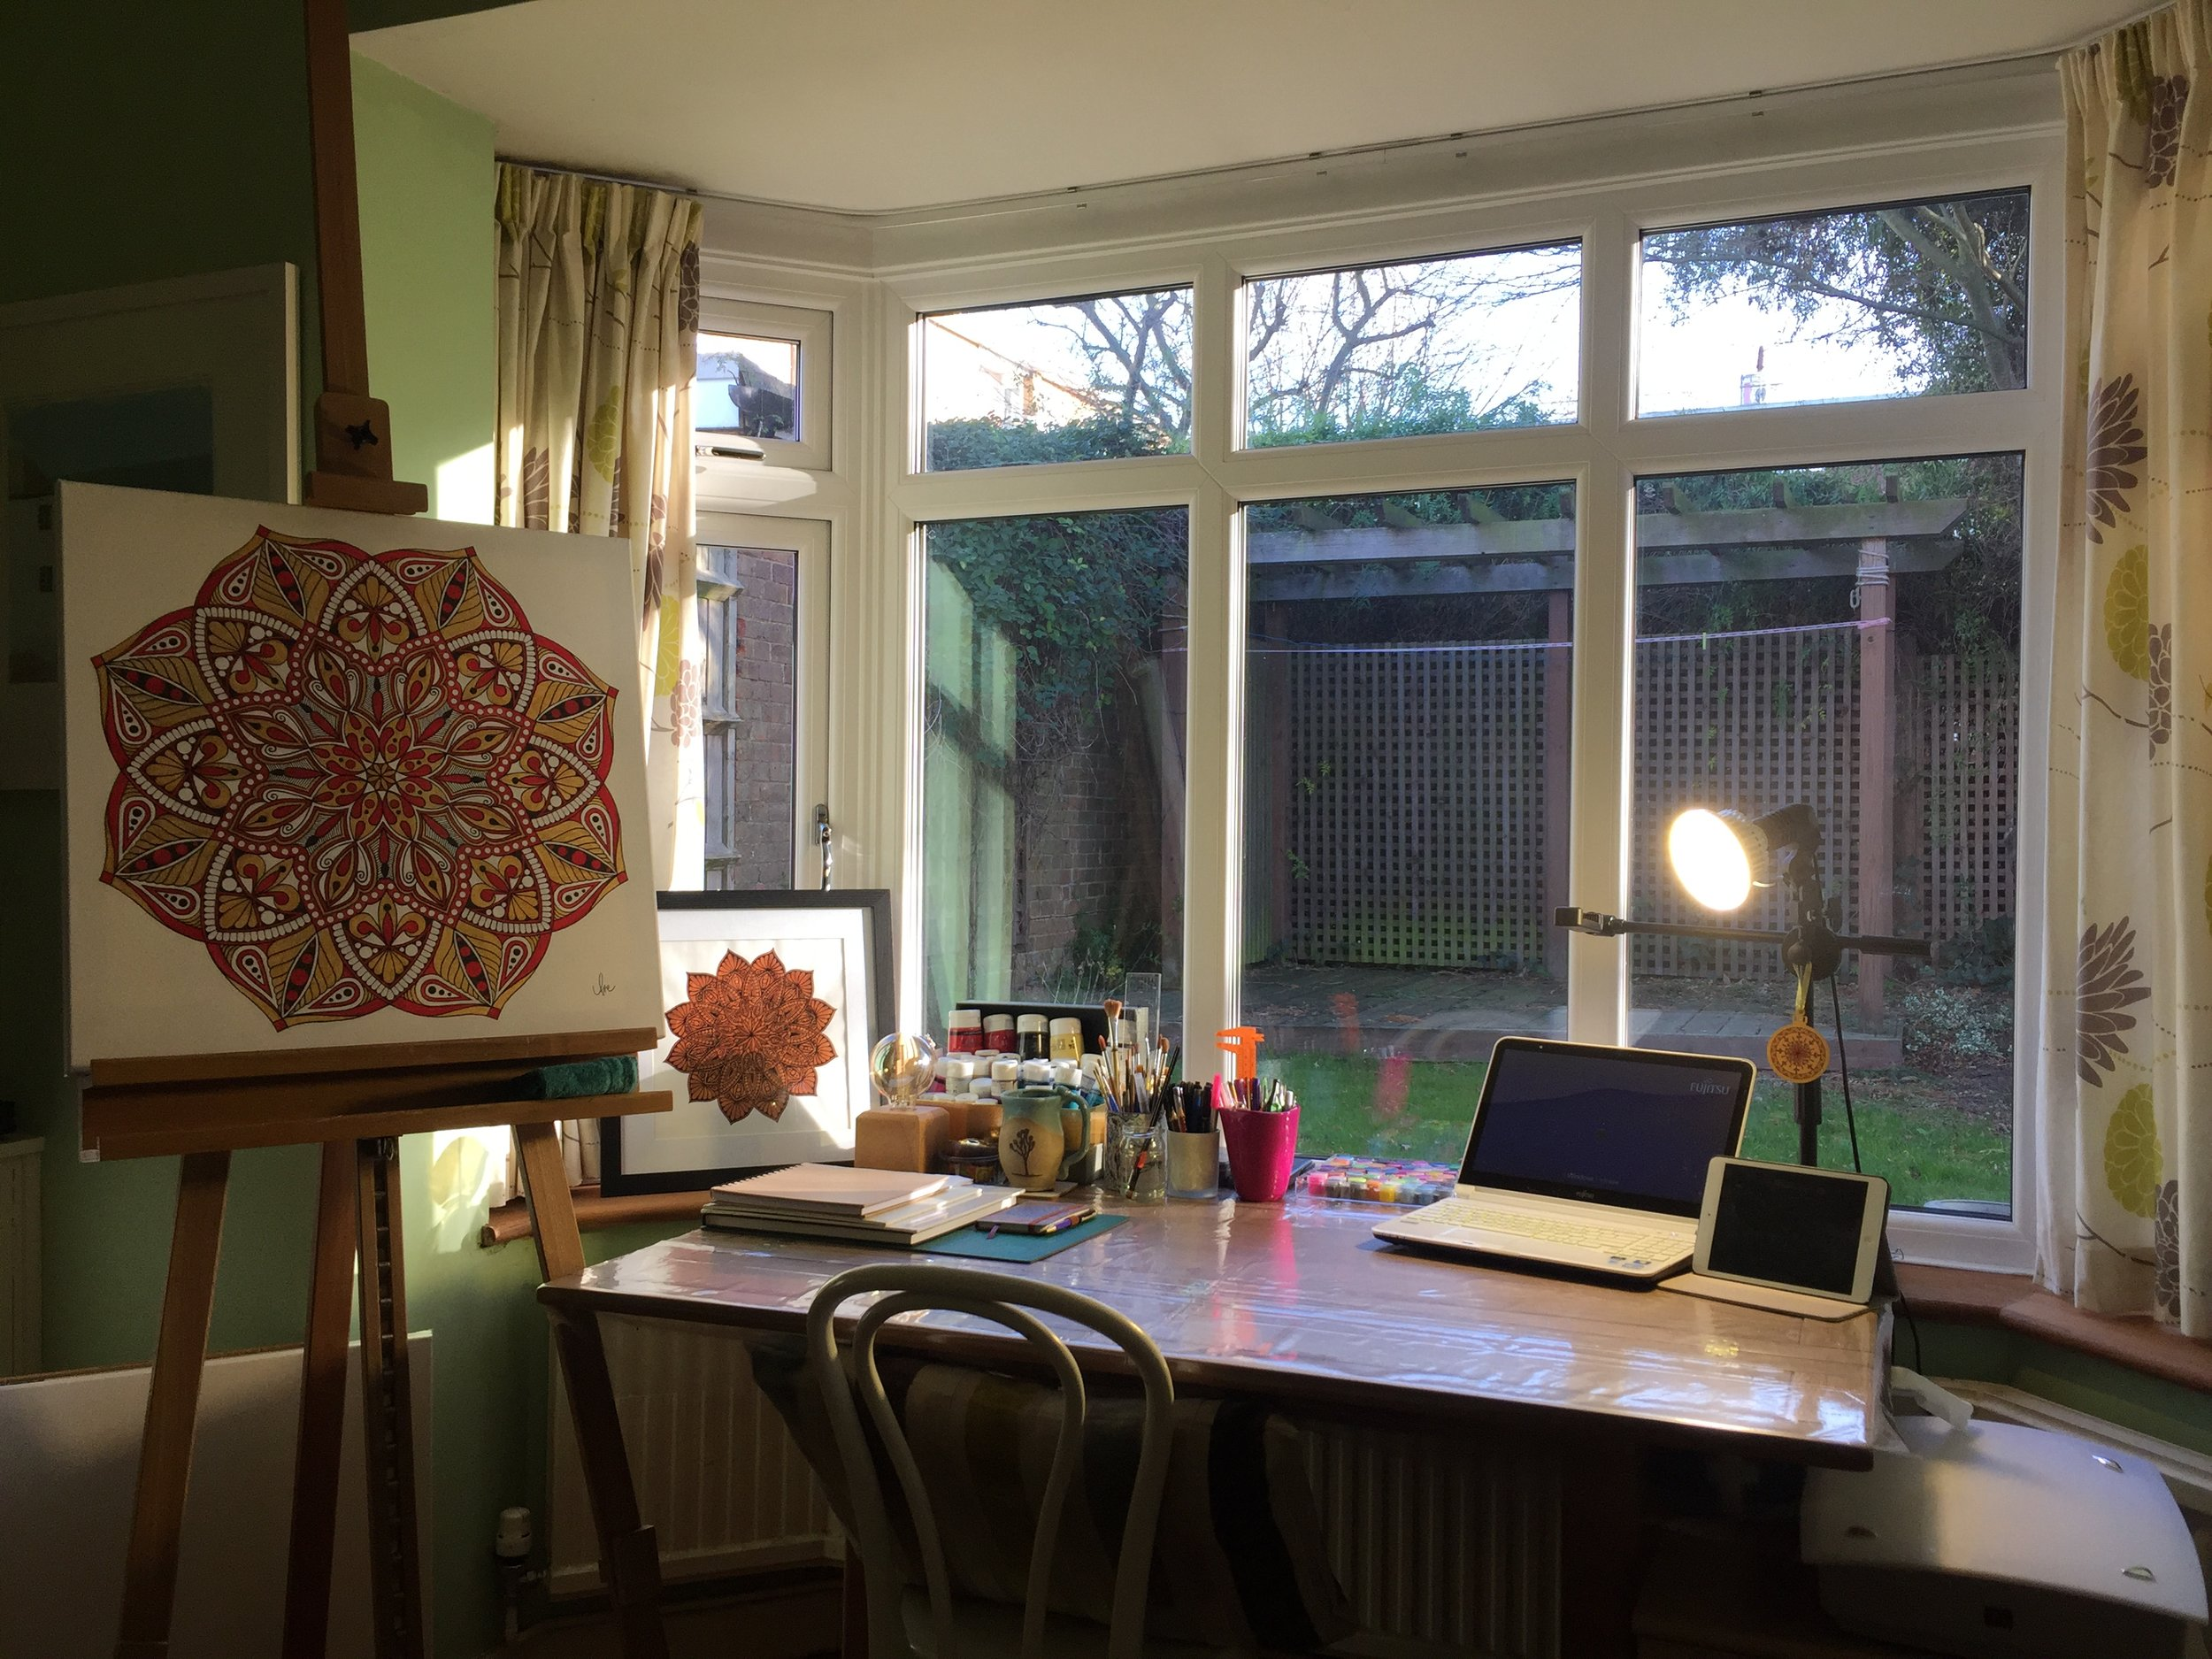 The artist's studio! Complete with views of squirrels, trees and neighbourhood kittys!